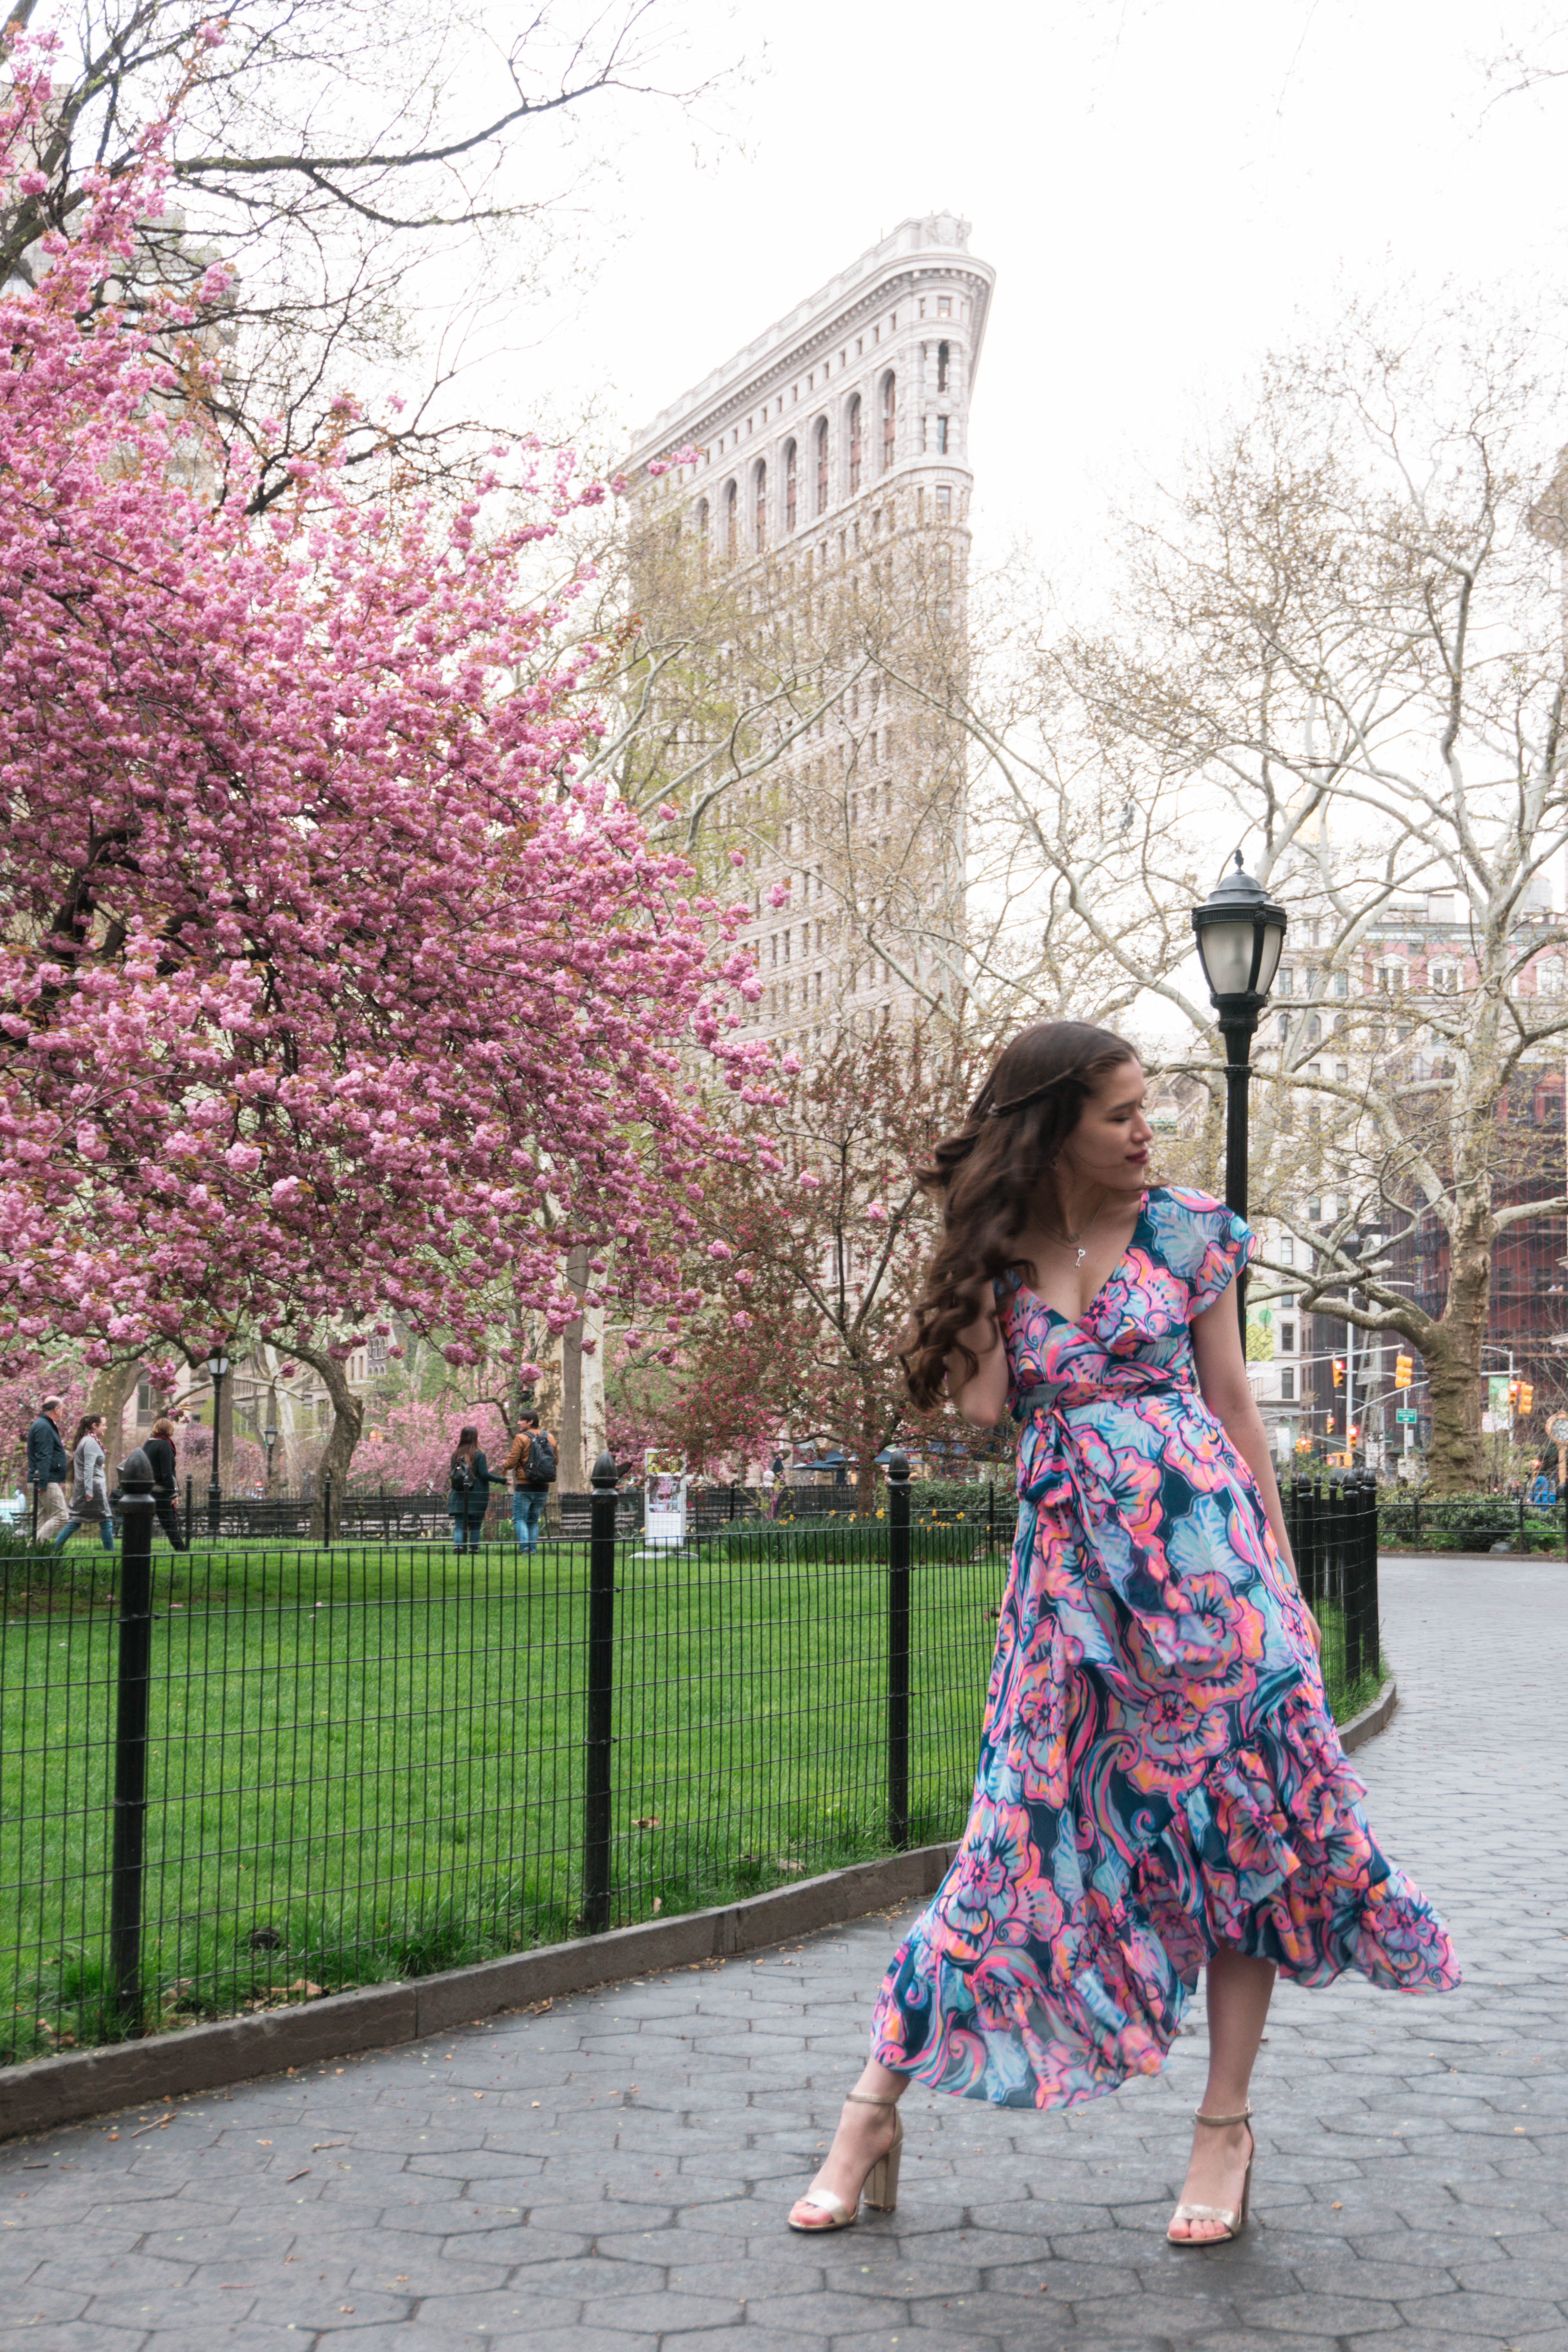 Lilly Pulitzer Marianna Dress in Boho Bateau Outside of the NYC Flatiron Building cherry blossom trees flowering blooms spring new york city wedding guest dress outfit ideas midi floral wrap dress with ruffle long brown hair curled brunette in gold strap metallic chunky heels madison square park may asian american trendy womens fashion inspiration inspo what to wear summer outdoor wedding event party target cheap shoes a new day pink blue purple orange green